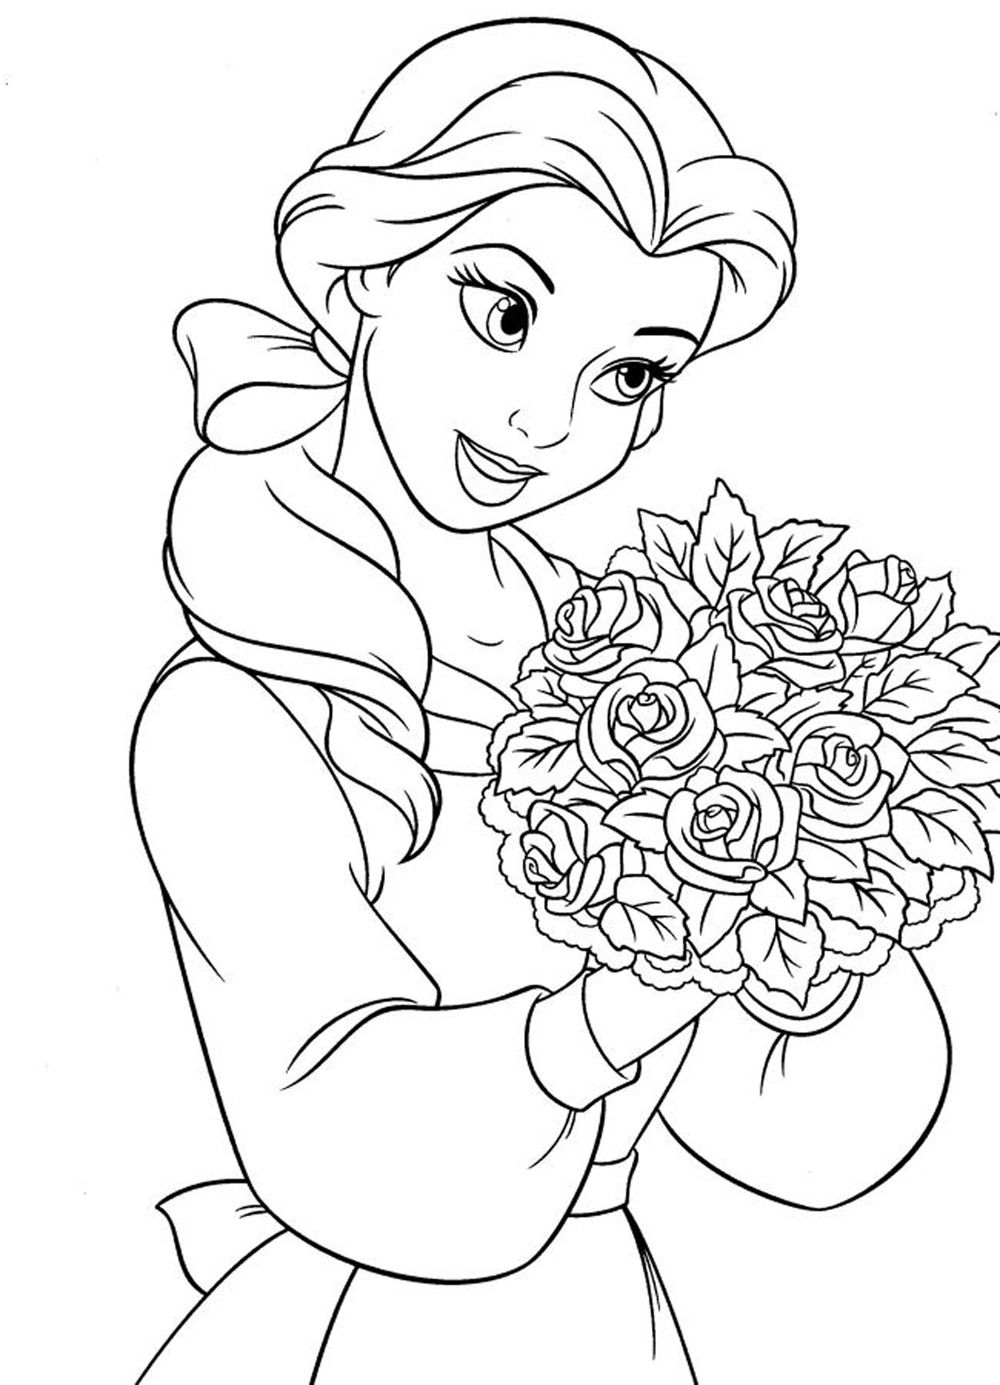 coloring pages girls free coloring pages for girls at getdrawings free download girls coloring pages